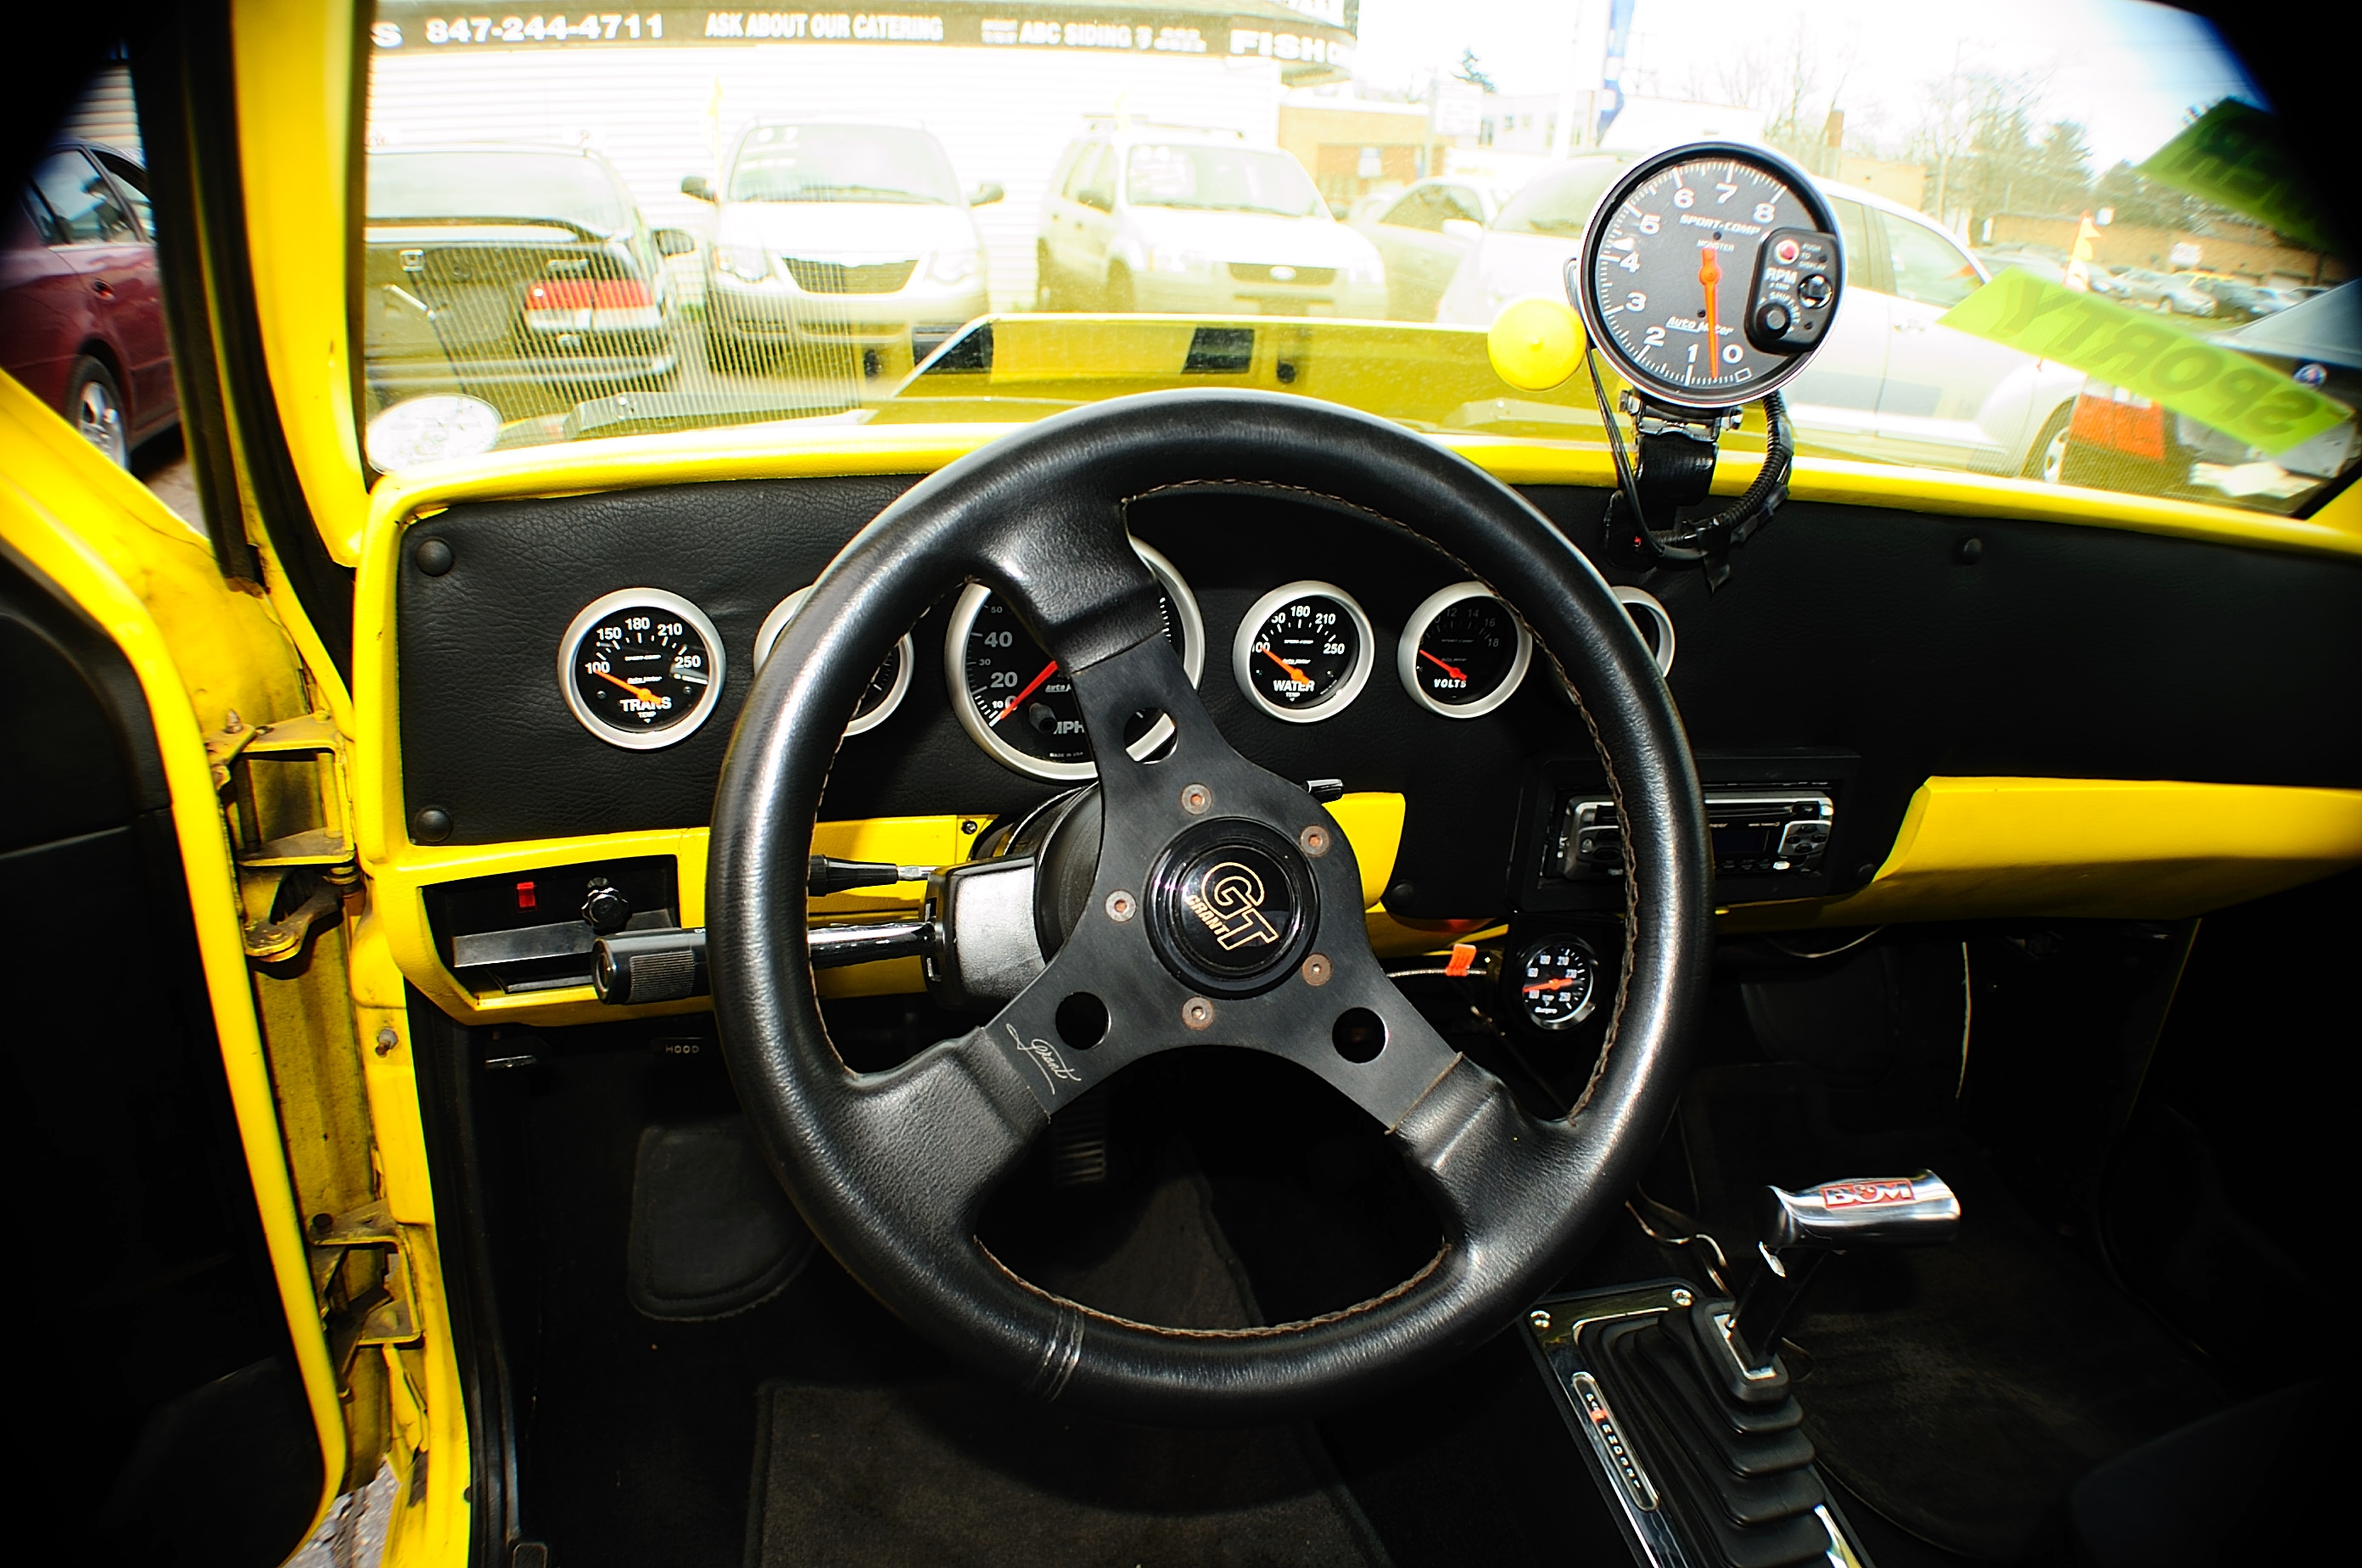 1985 Chevrolet S10 Super Bee Yellow Ext Cab sale Green Oaks Hainesville Hawthorne Woods